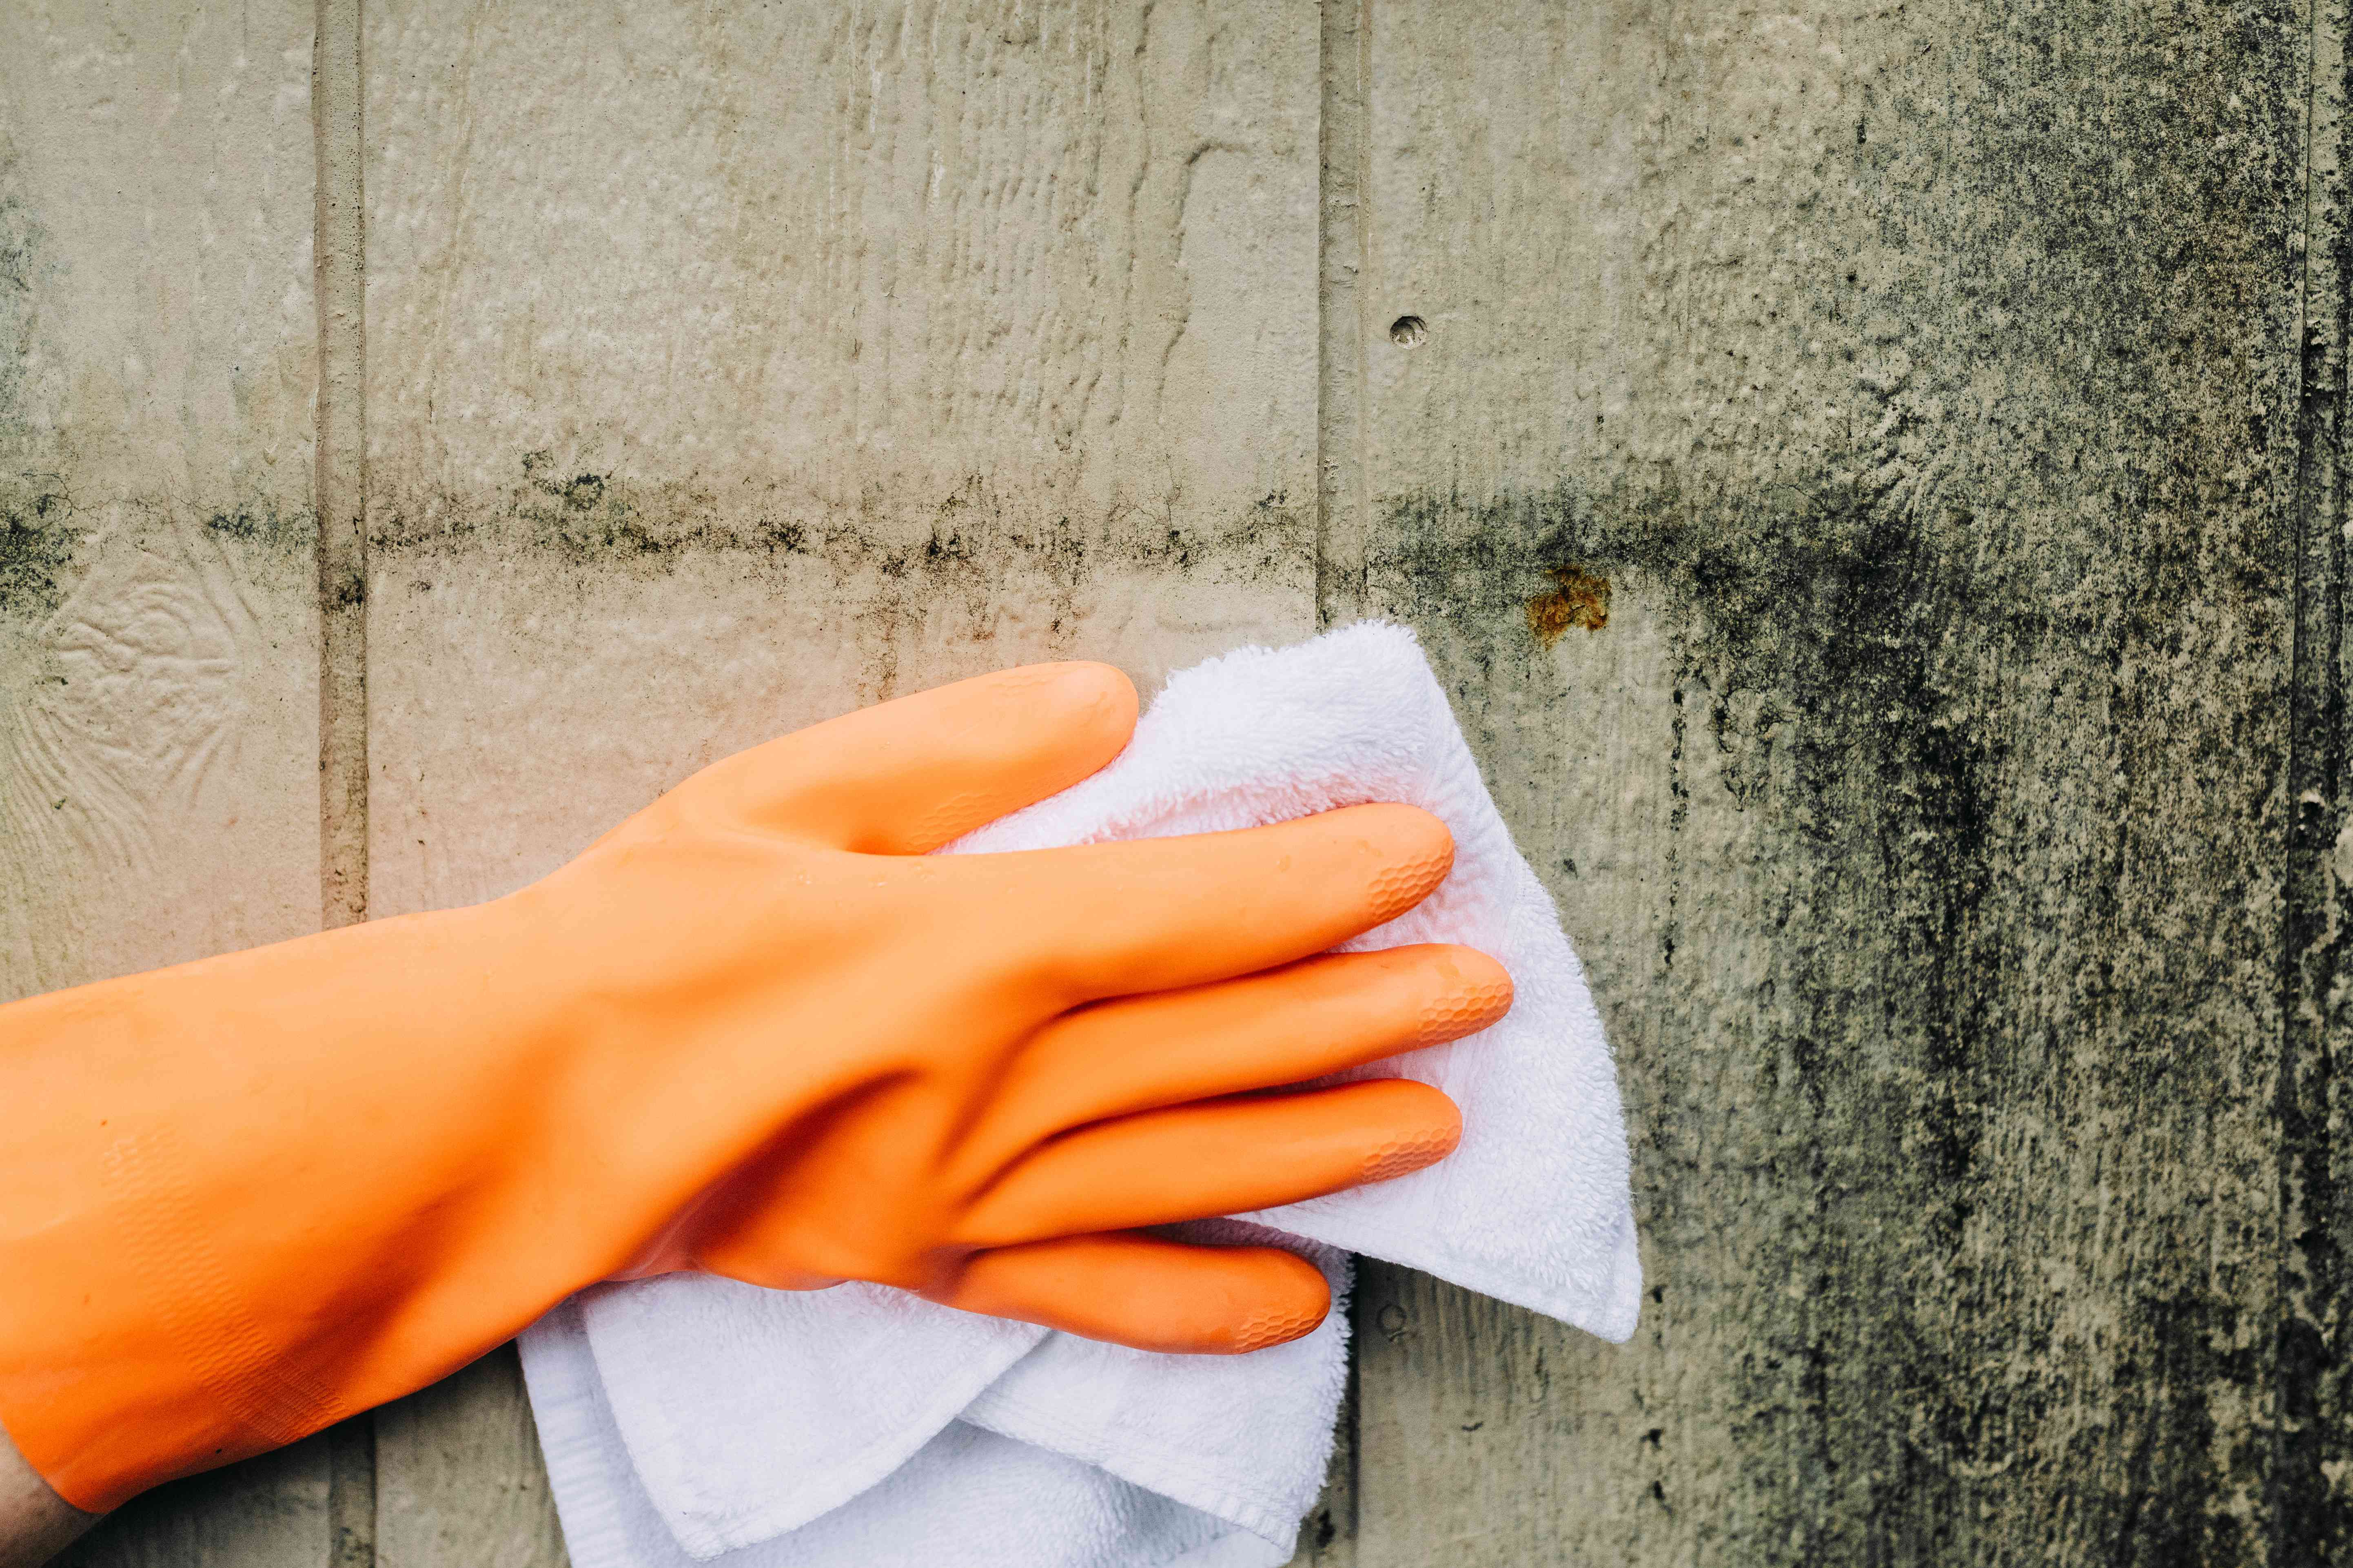 White towel soaked with chlorine bleach rubbing off moldy wood with orange gloves